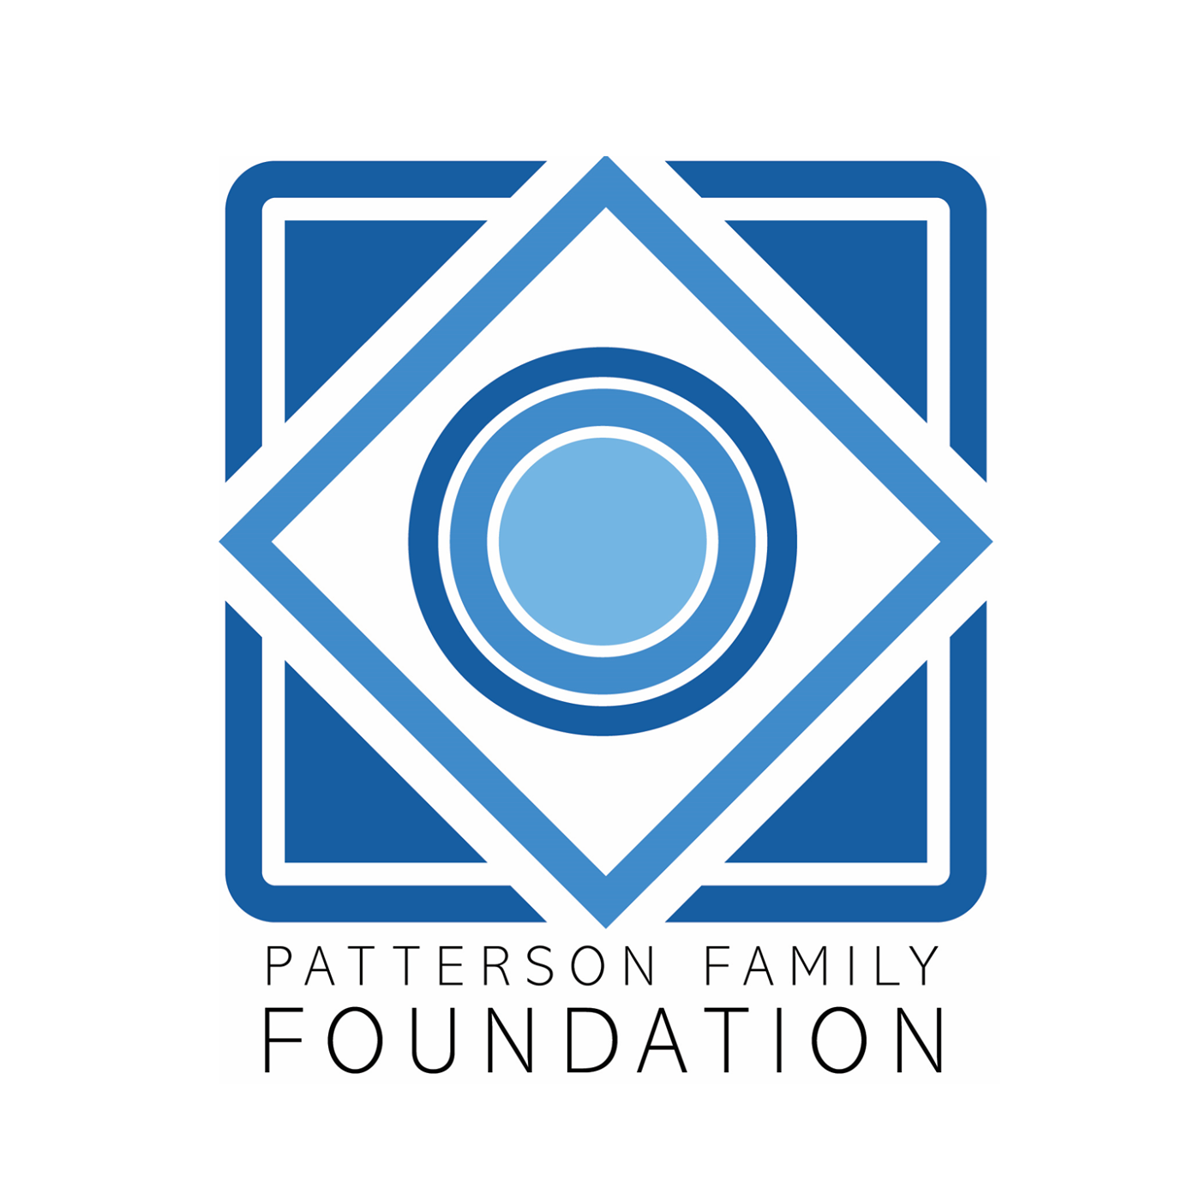 patterson family foundatino.png